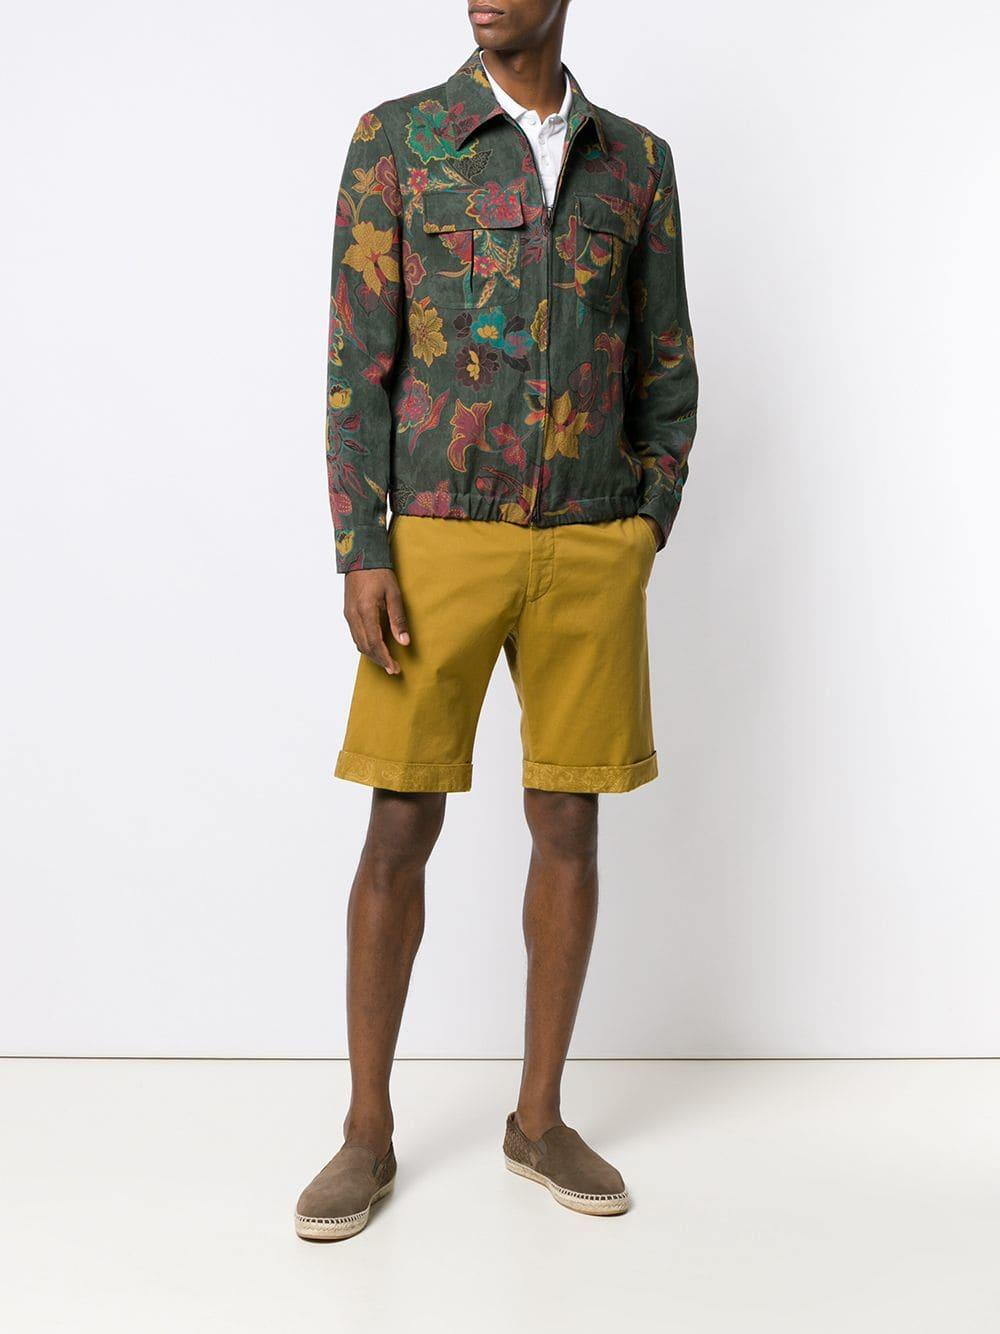 6a88d2975f Lyst - Etro Floral Print Zipped Jacket in Green for Men